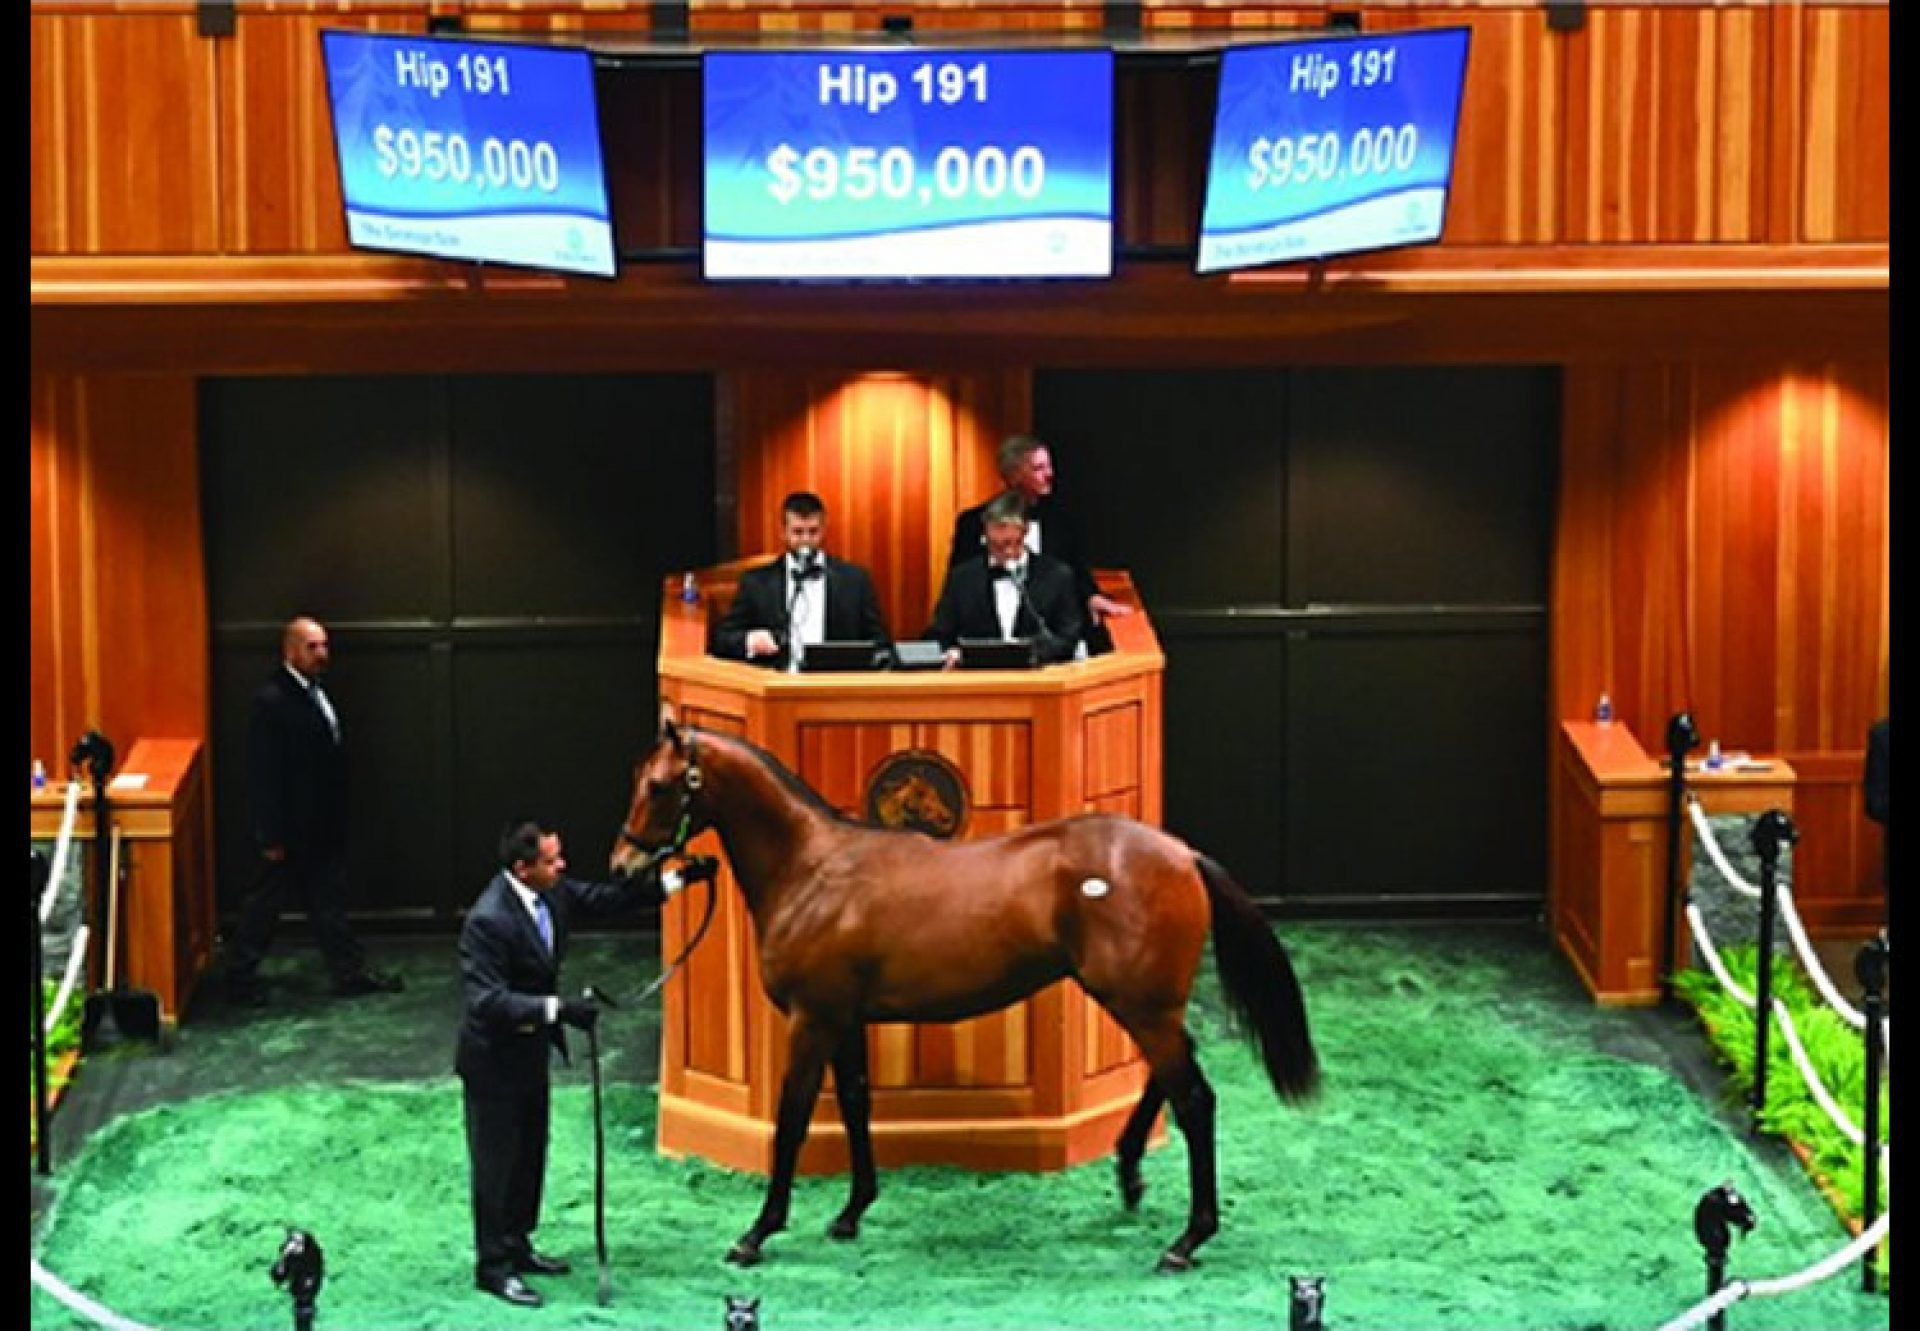 American Pharoah yearling colt ex Bon Jovi Girl selling for $950,000 at Saratoga